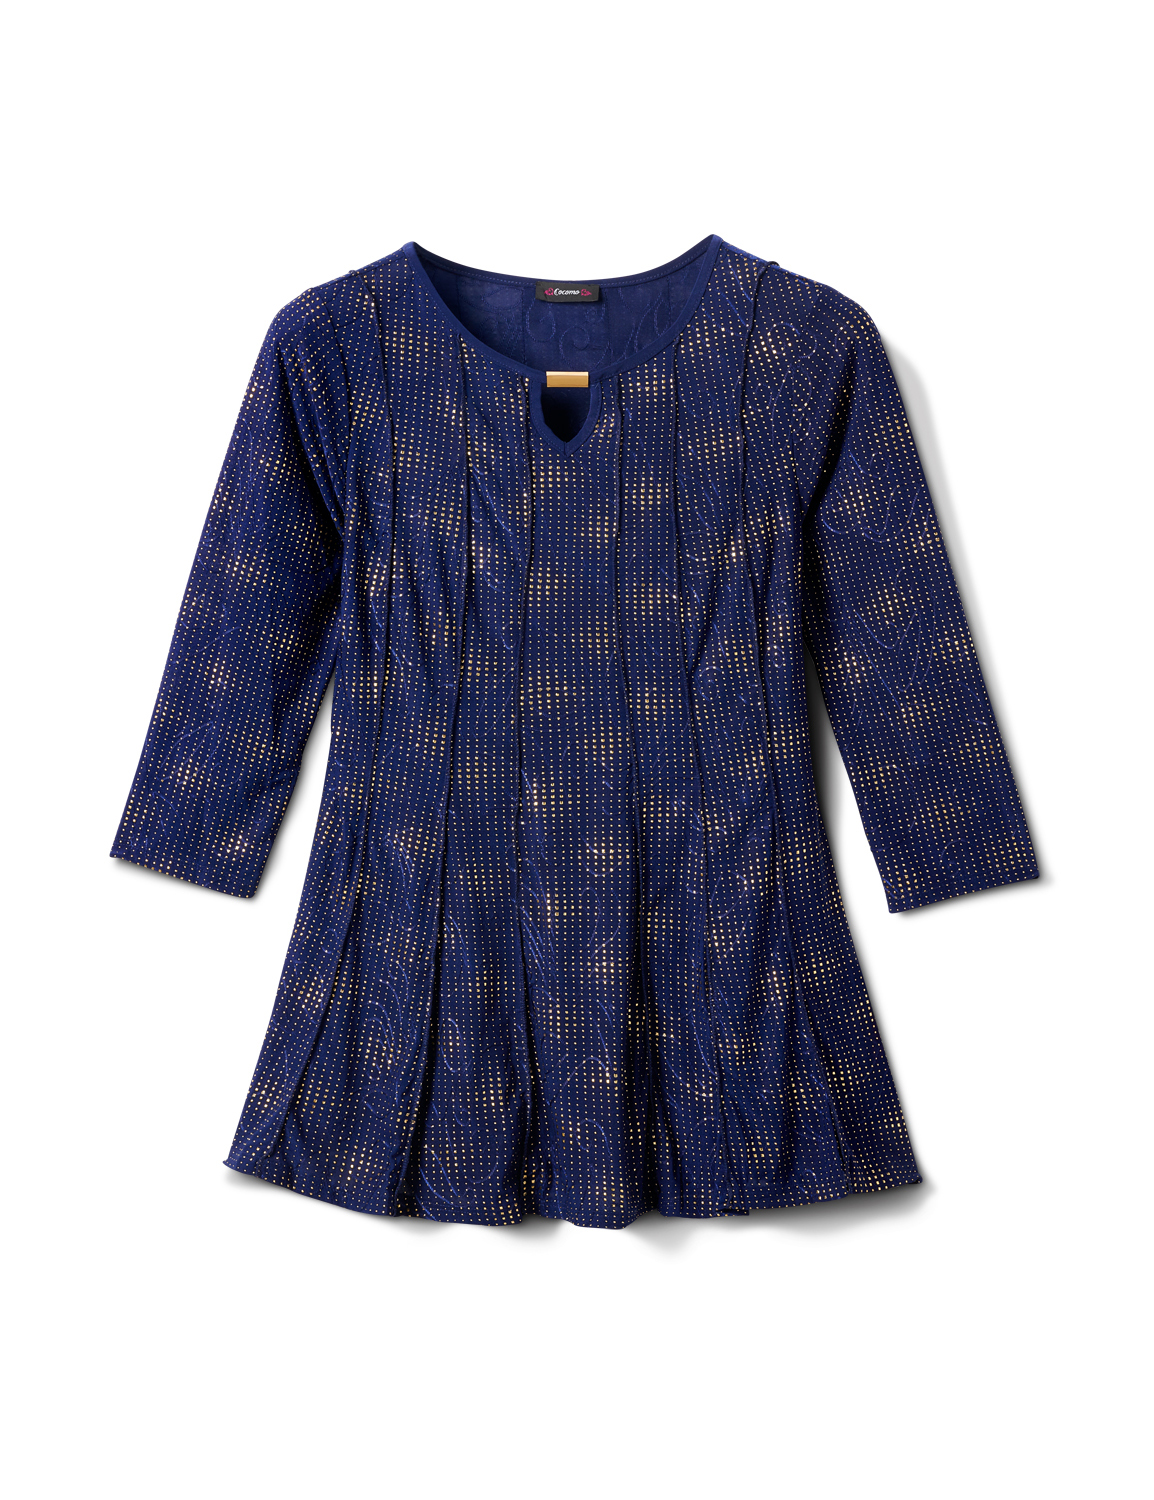 Gold Foil Fit And Flare Knit Top -Navy/Gold - Front